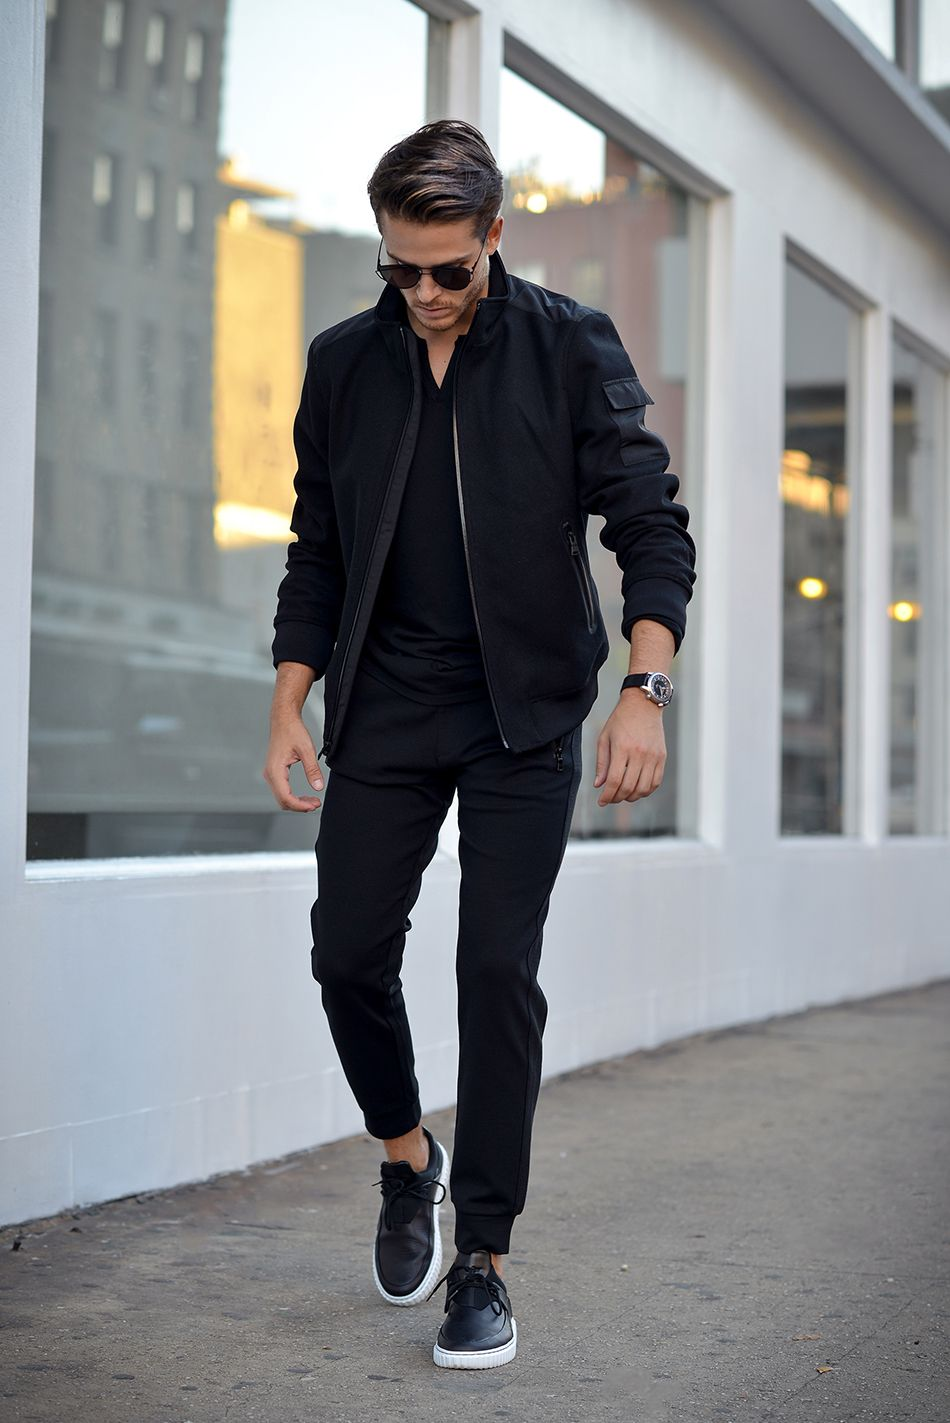 Black Men Casual Outfits